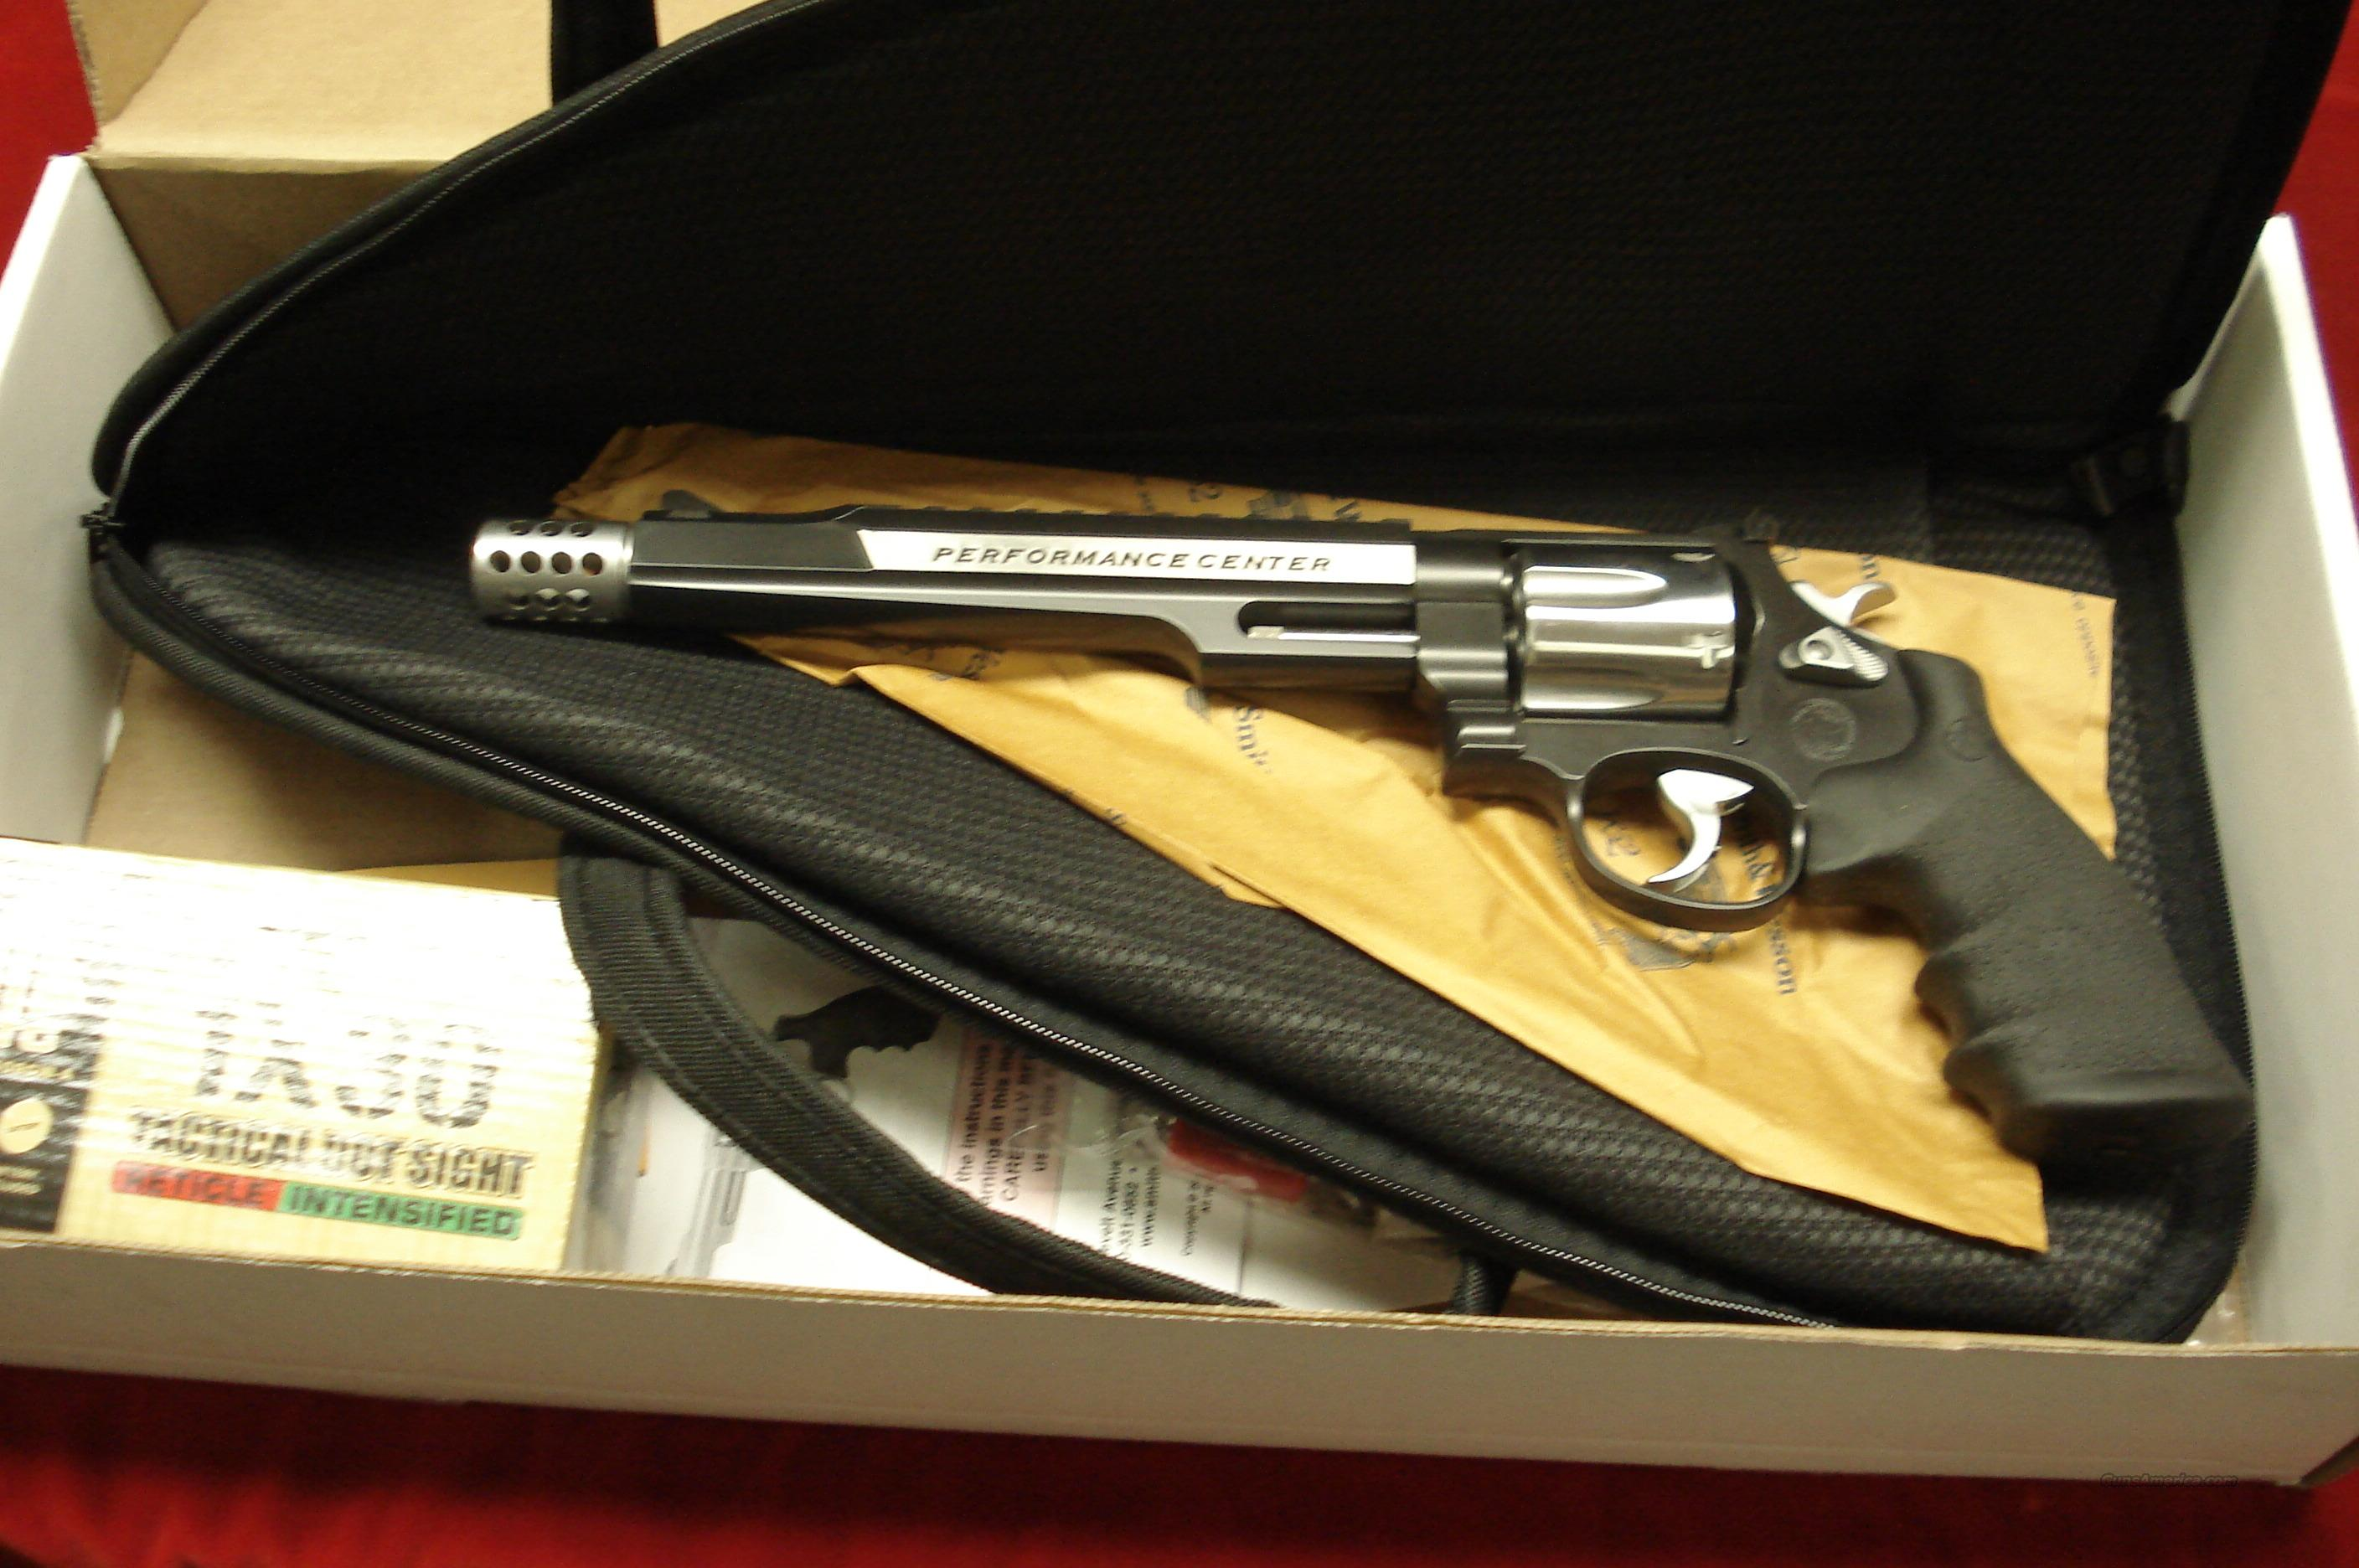 "SMITH AND WESSON PERFORMANCE CENTER MODEL 629  HUNTER 44 MAGNUM 7.5"" BARREL W/MUZZLE BREAK TWO TONE STAINLESS NEW  Guns > Pistols > Smith & Wesson Revolvers > Performance Center"